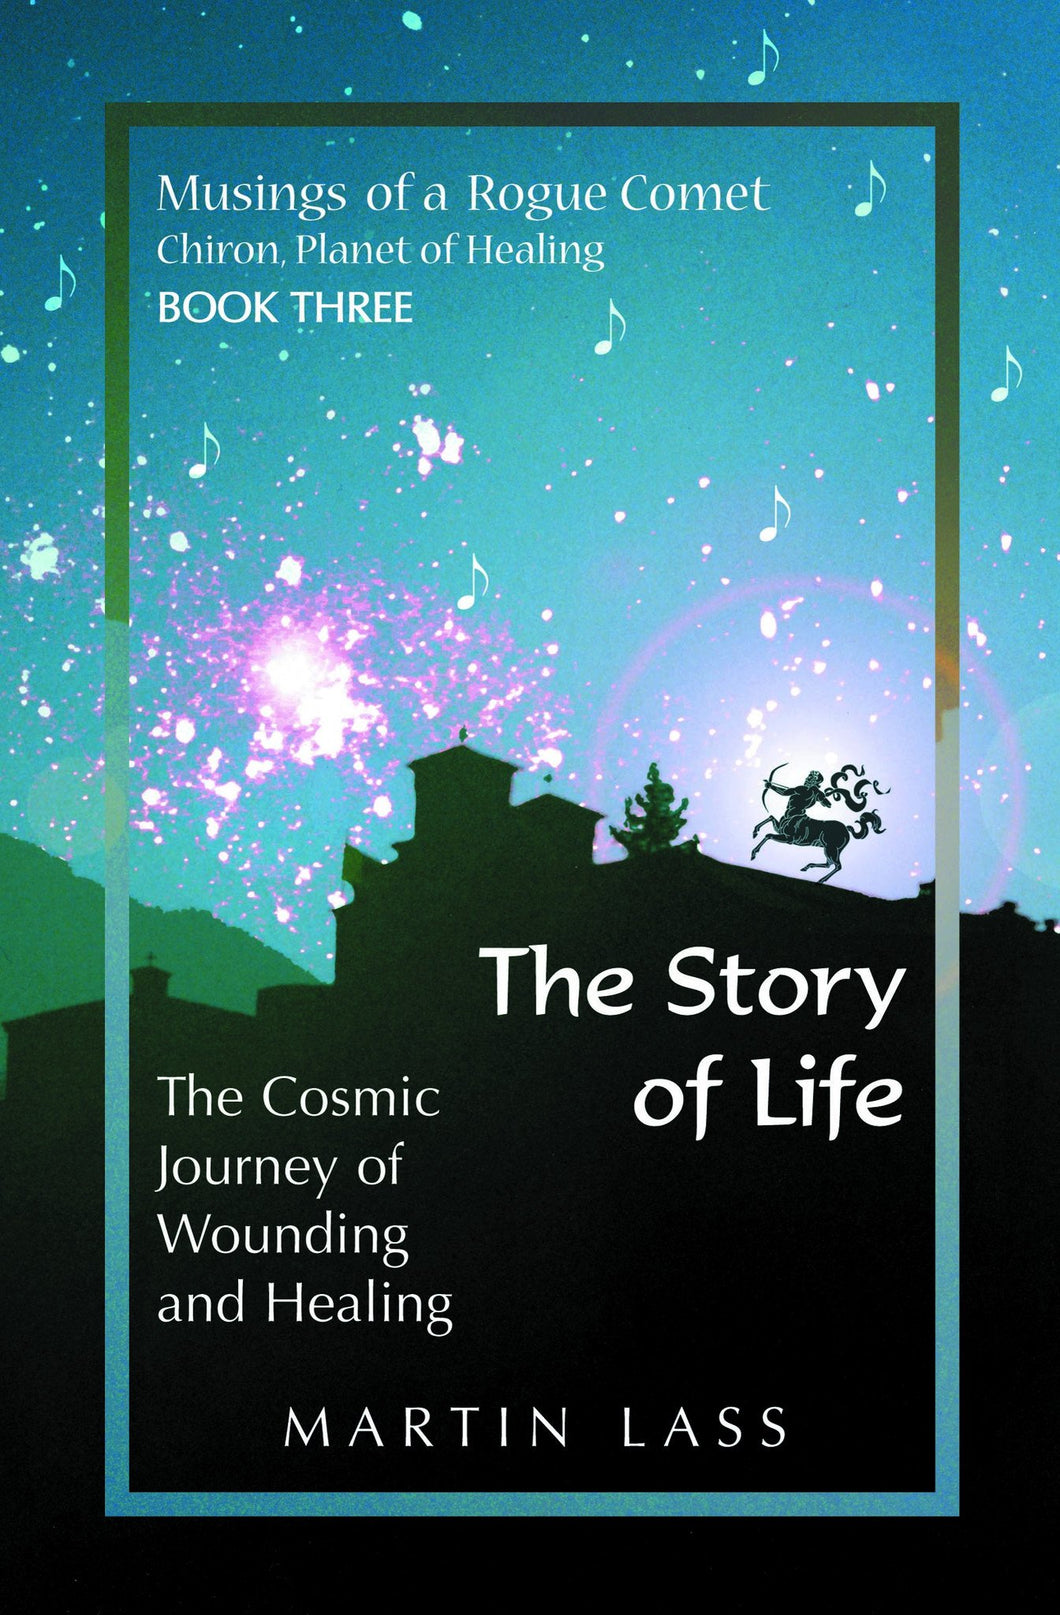 The Story of Life - Musings of a Rogue Comet, Book 3 - The Cosmic Journey of Wounding and Healing